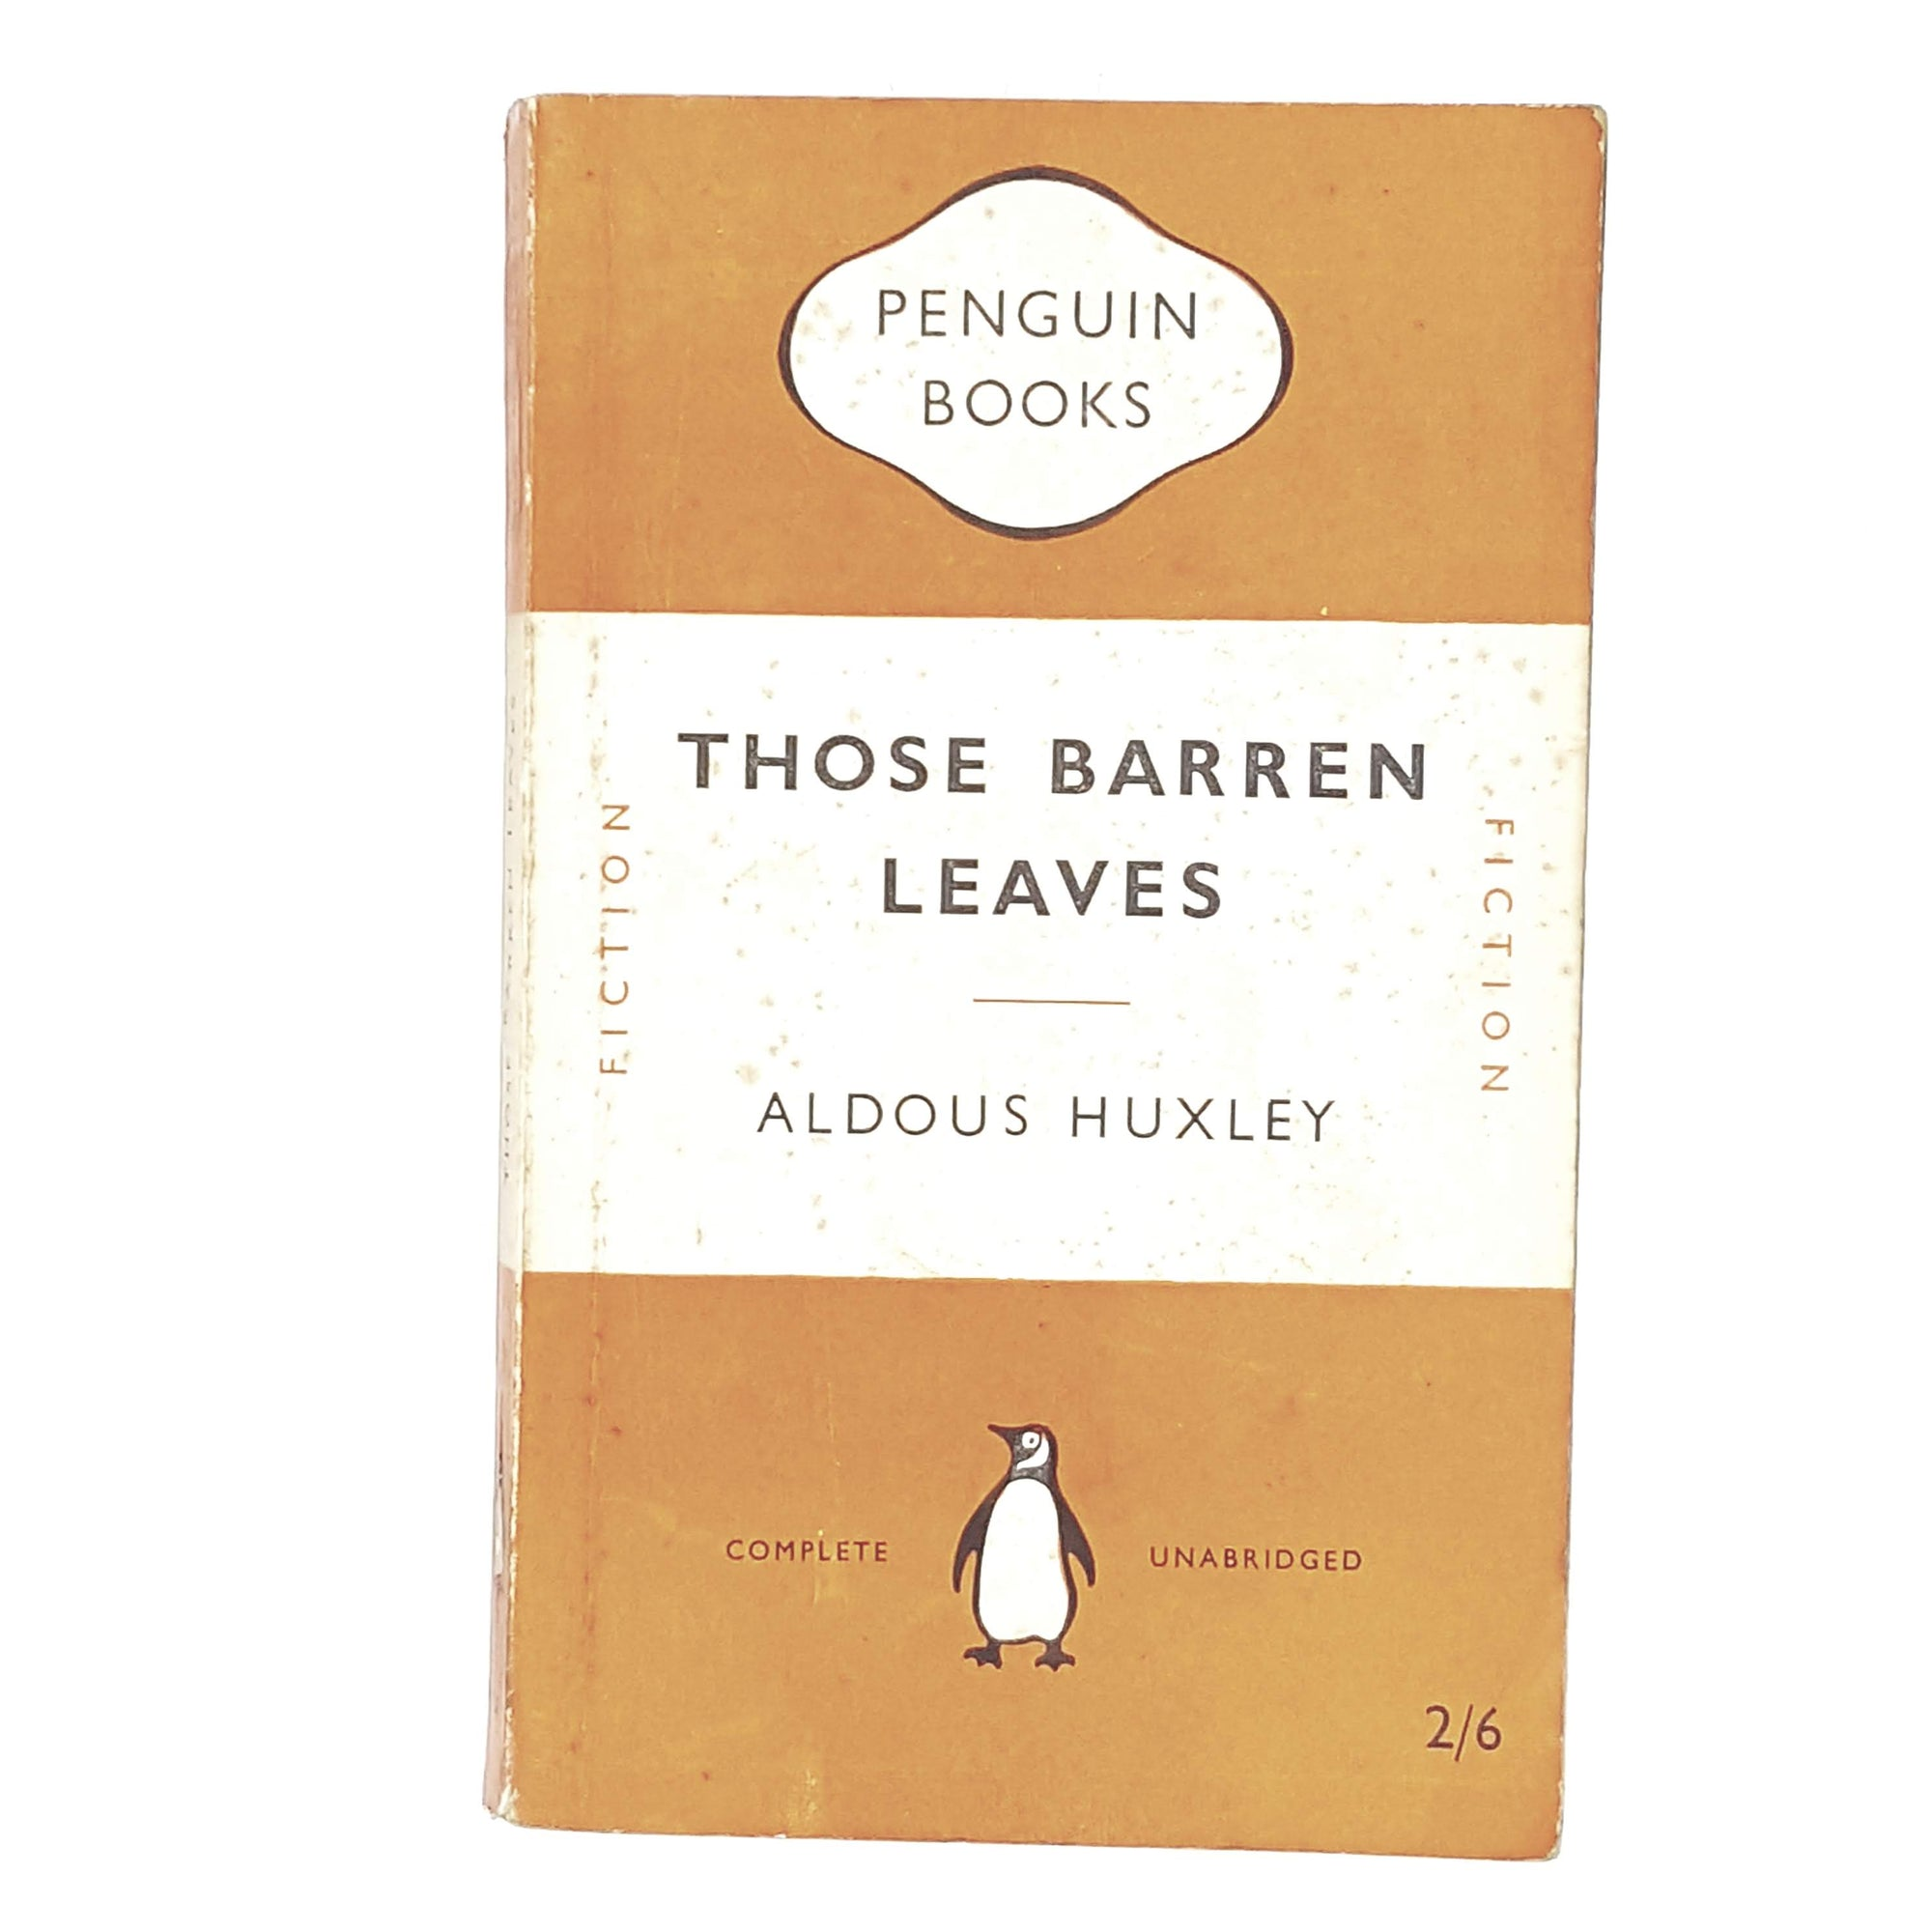 vintage-penguin-those-barren-leaves-by-aldous-huxley-1951-orange-classic literature-country-house-library